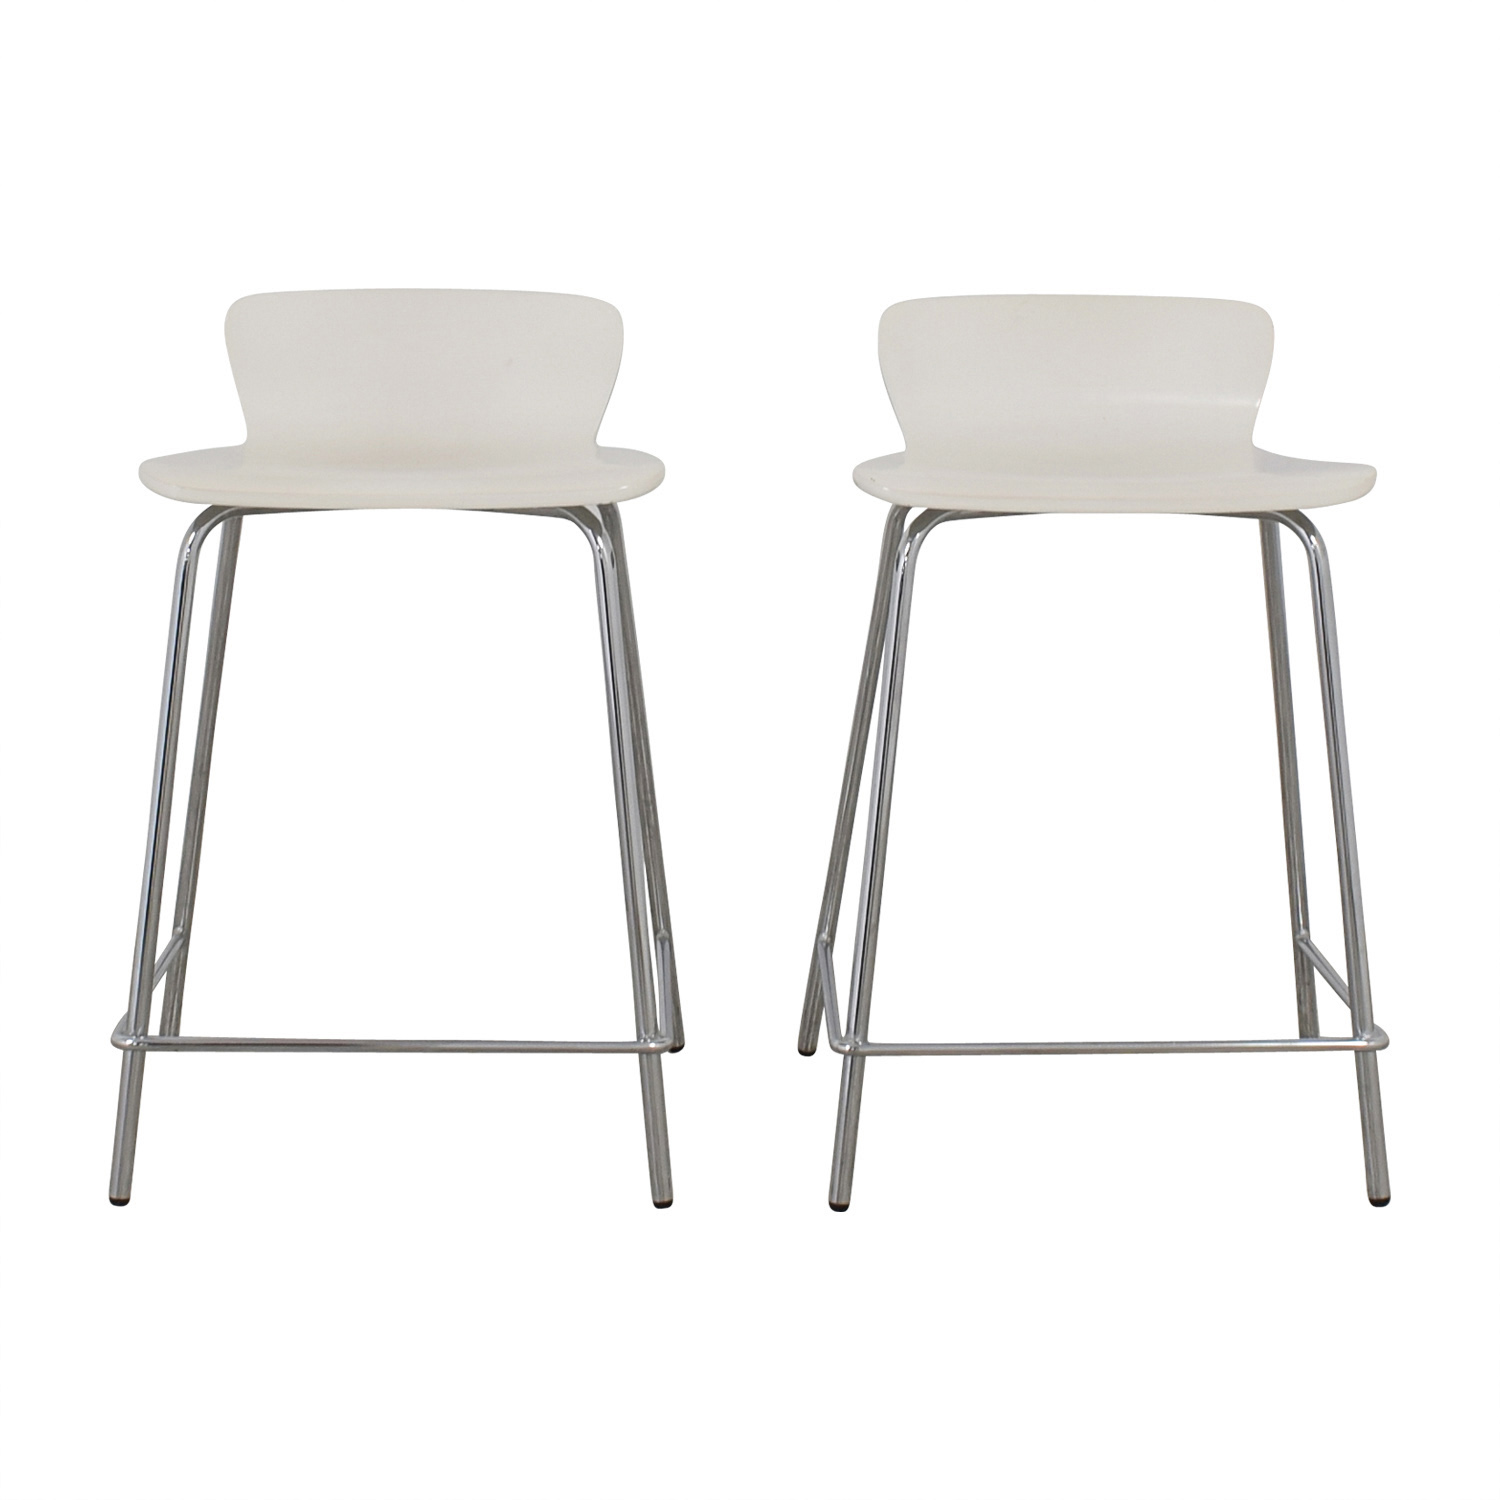 Crate and Barrel Crate and Barrel Felix White Counter Stools used